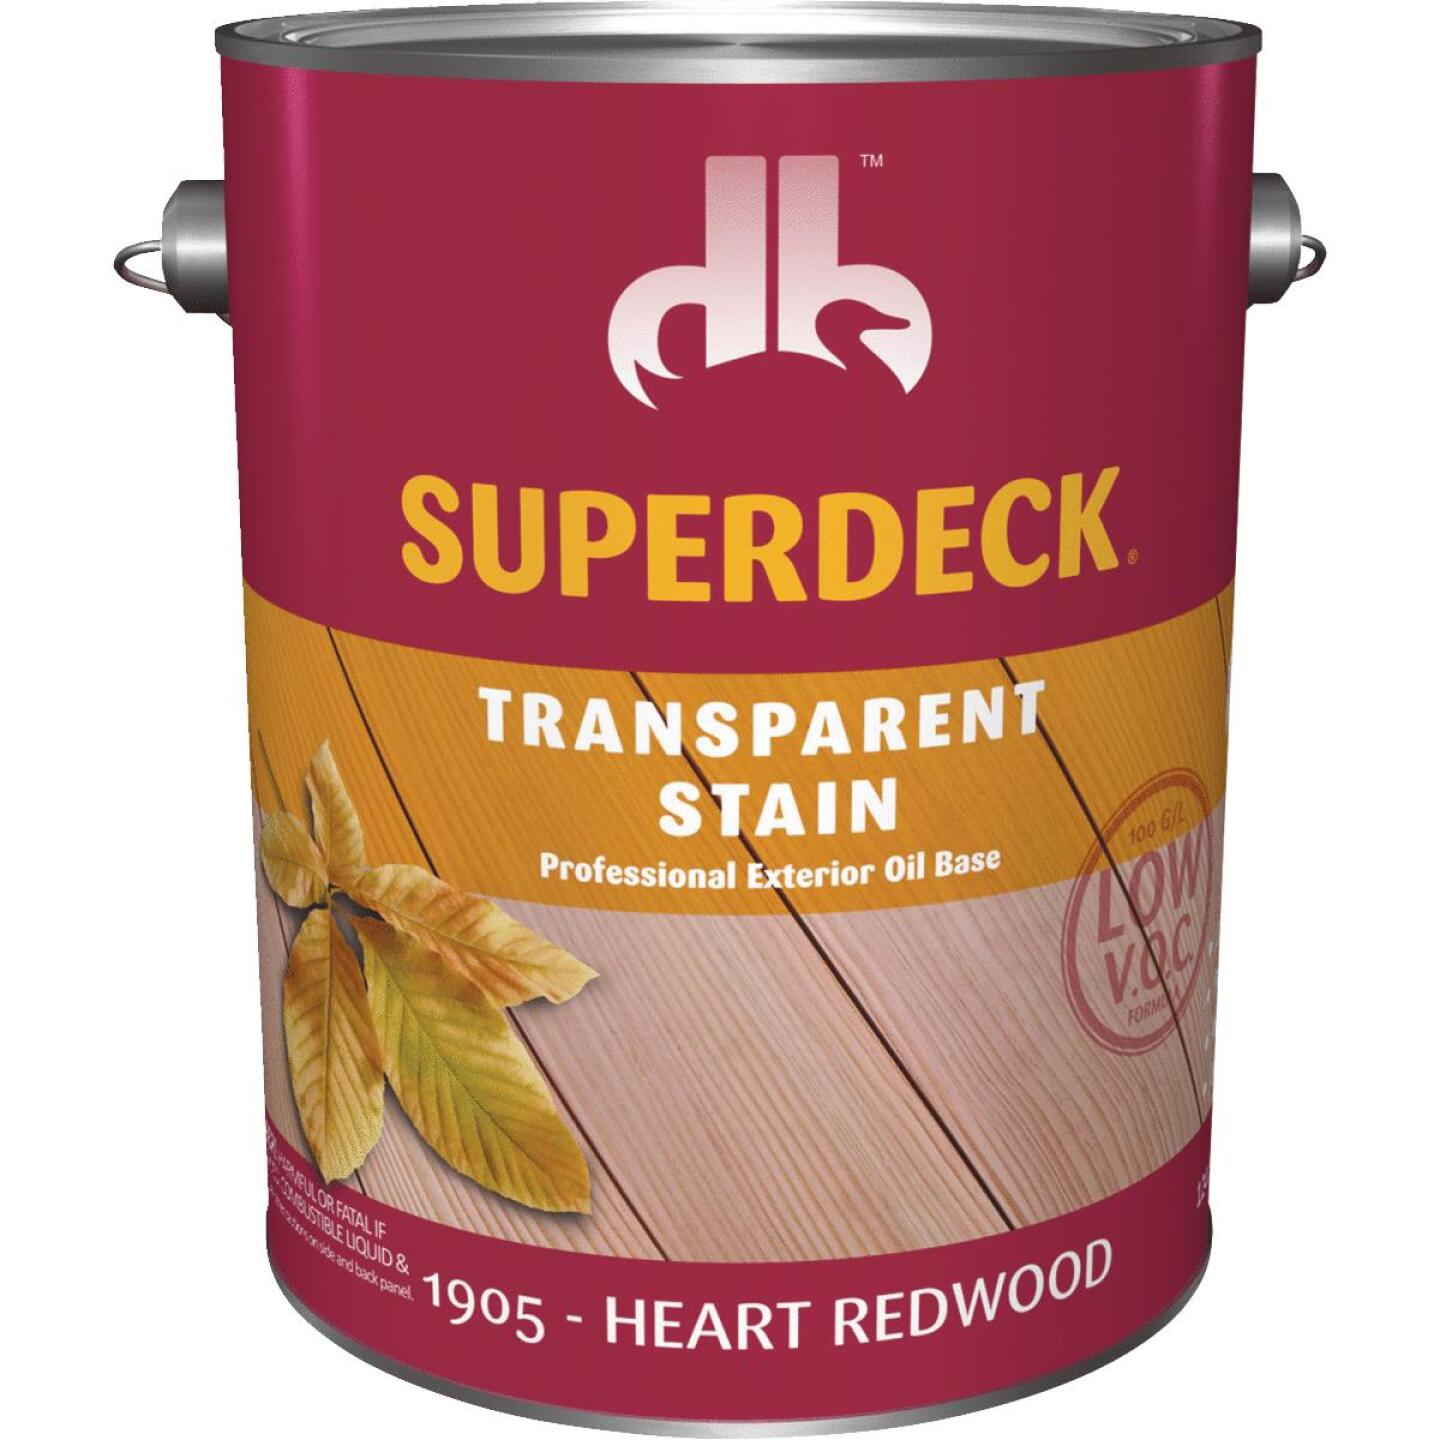 Duckback SUPERDECK VOC Transparent Exterior Stain, Heart Redwood, 1 Gal. Image 1